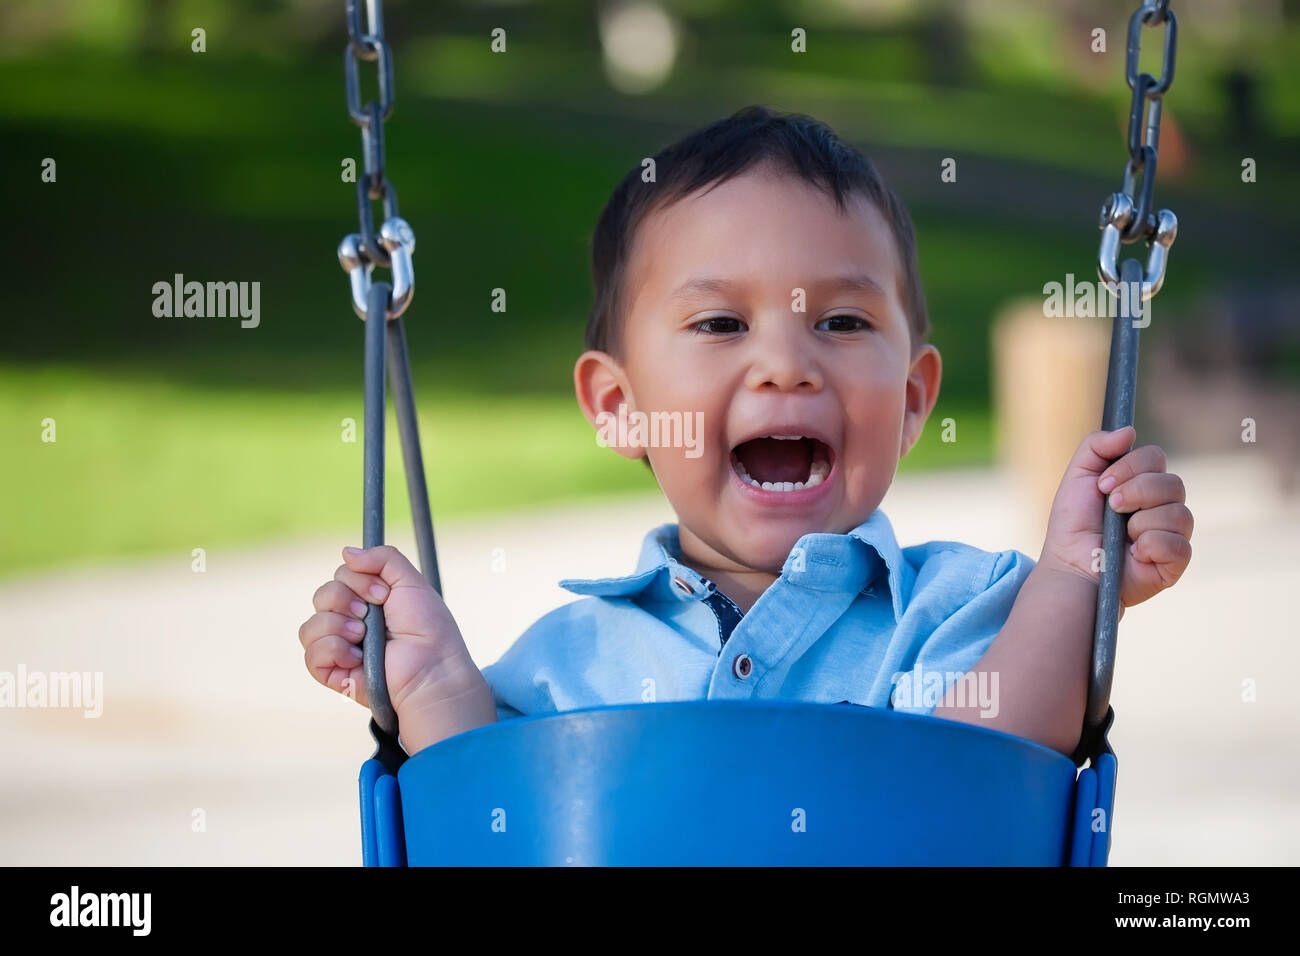 2 year old boy yelling out loud while riding a blue swing at a local park. - Stock Image